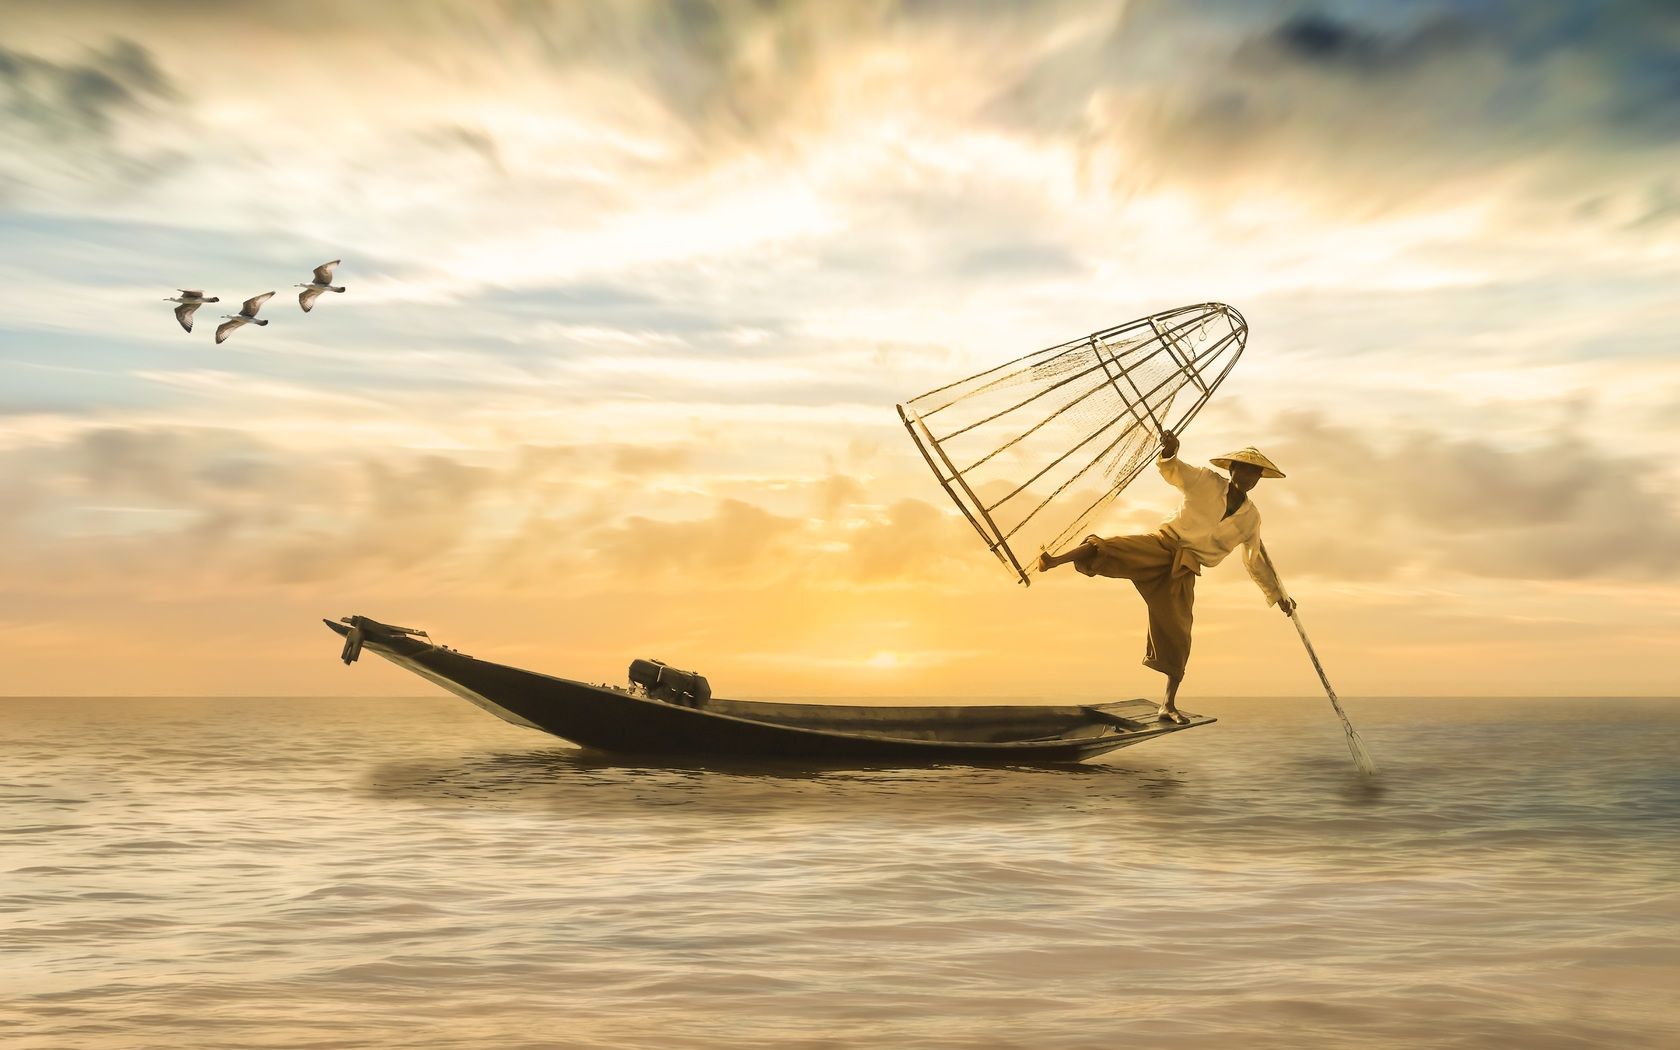 fisherman-fishing-boat-qa.jpg